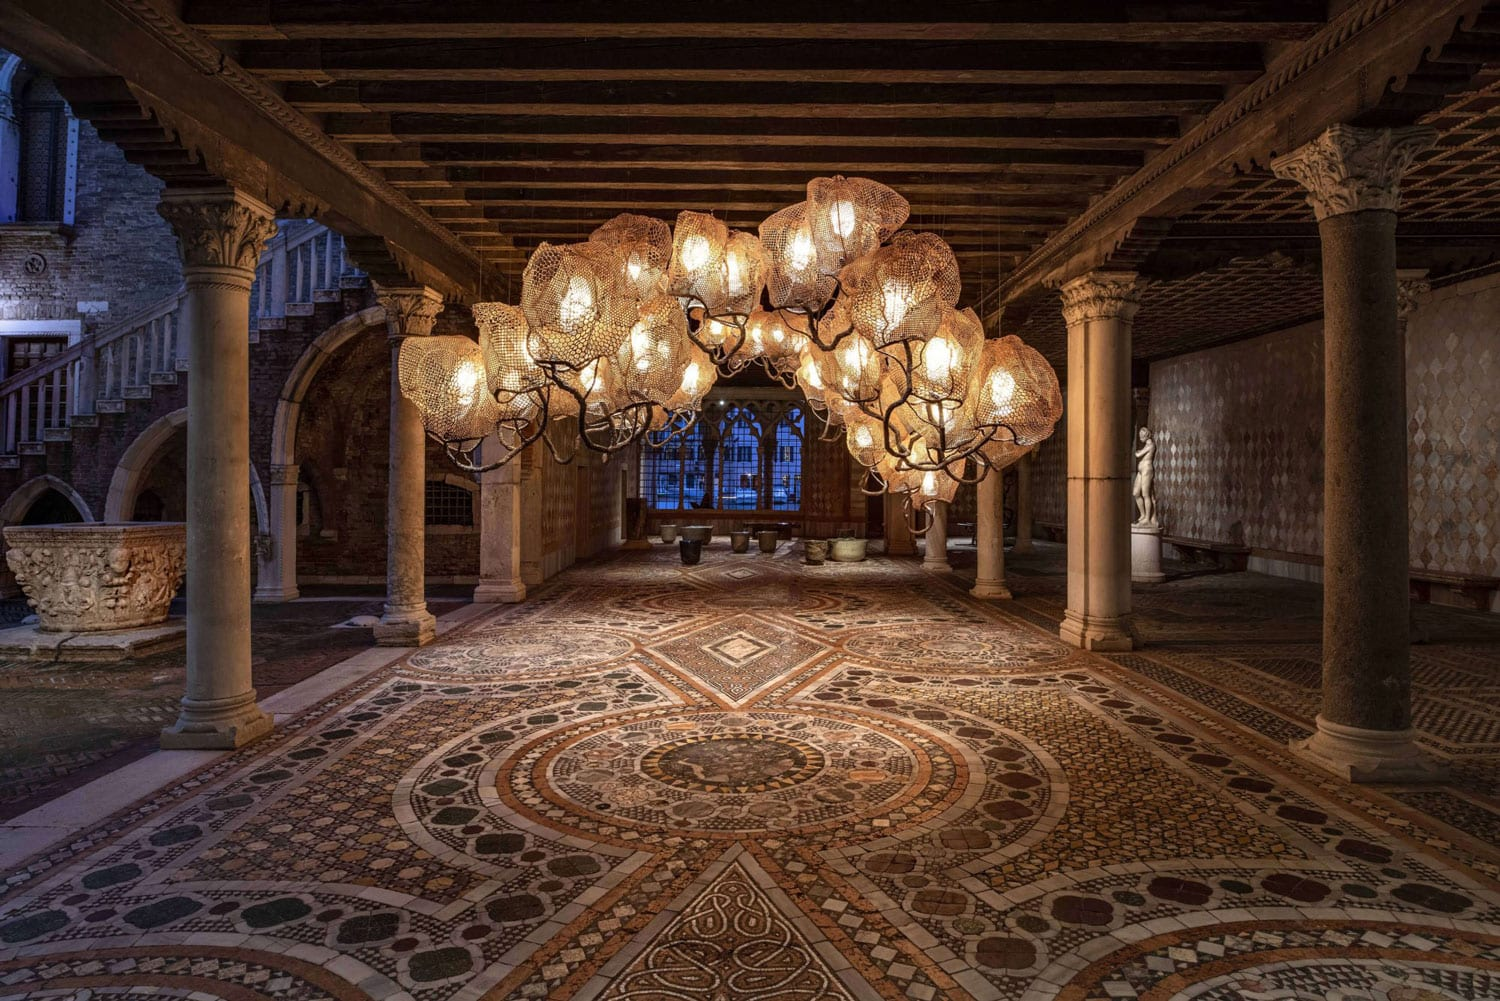 Inside A Forest Cloud Chandelier by Nacho Carbonell at Venice Art Biennale 2019 | Yellowtrace